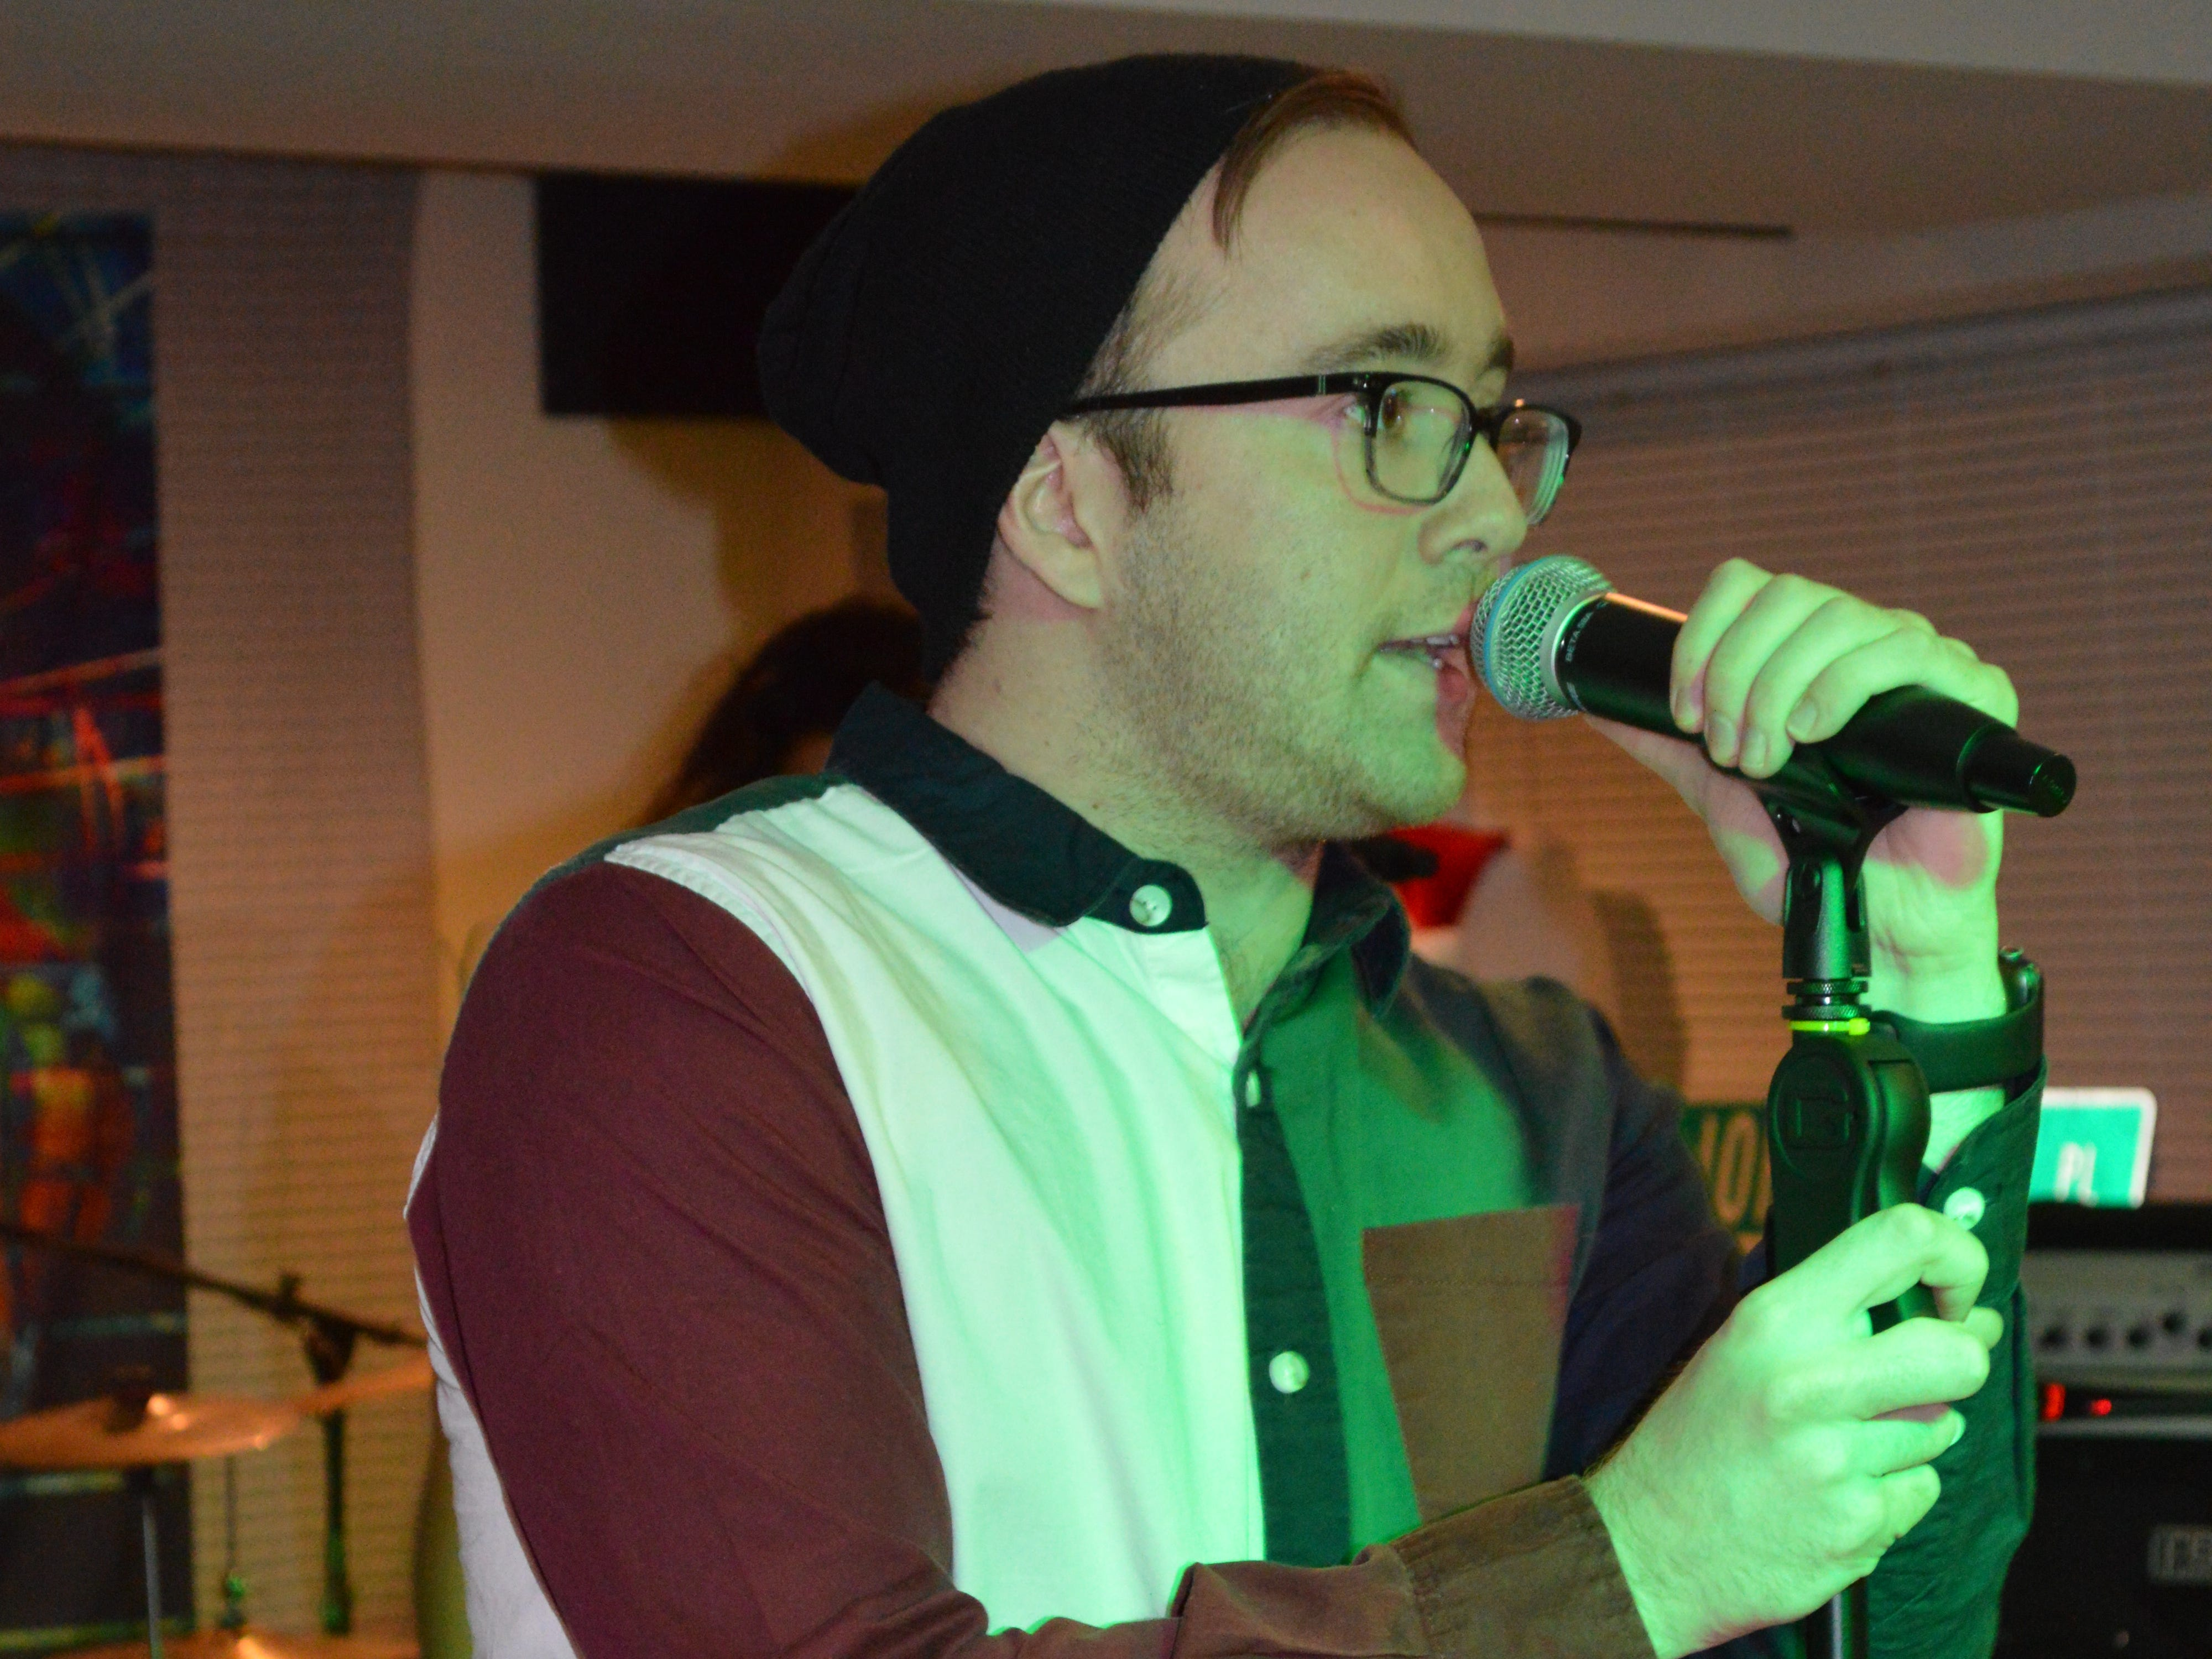 Smart Mouth vocalist Austin Riche, 22, said Kids From Wisconsin really developed him as a singer, performer and dancer.